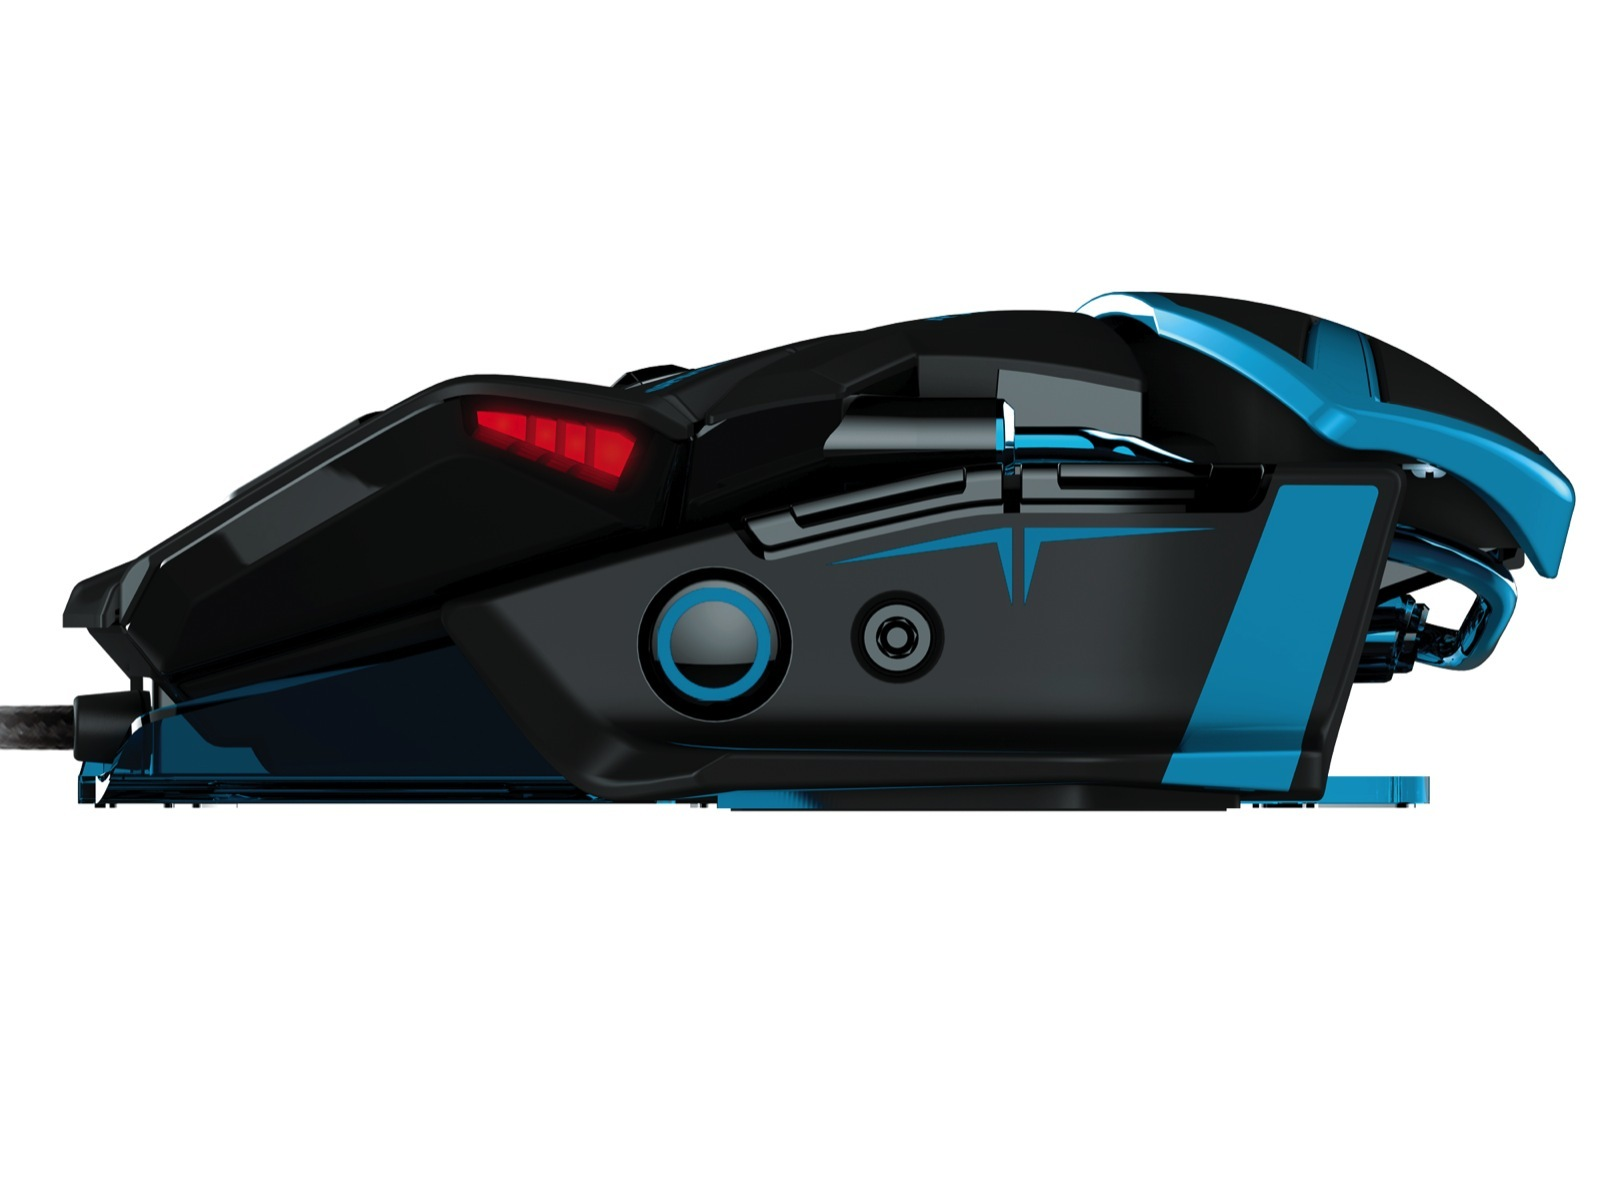 Foto de Mad Catz R.A.T. TE, Tournament Edition (4/4)